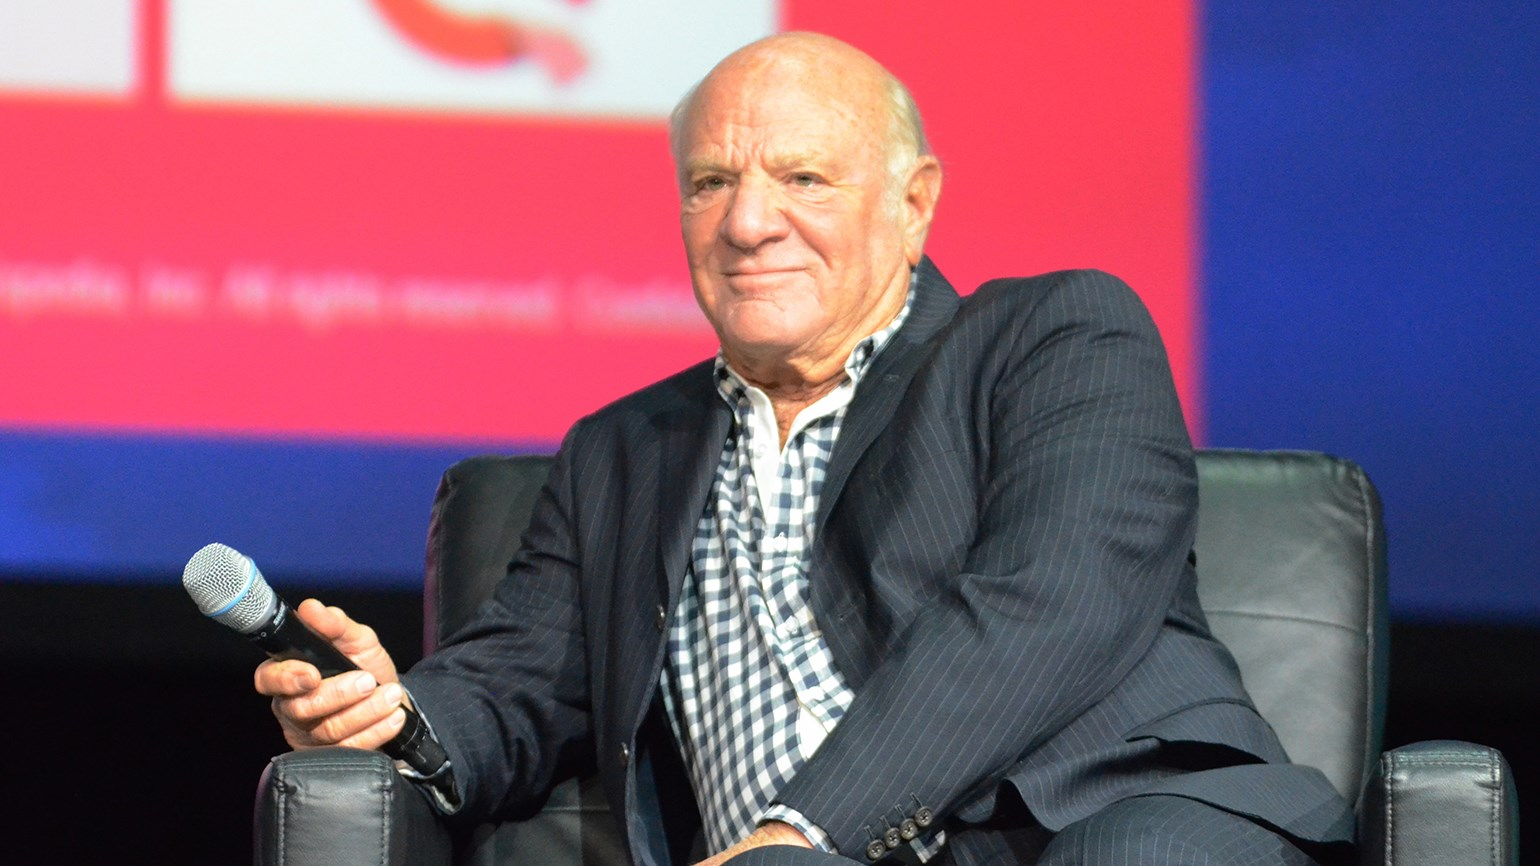 Info leak had Barry Diller telling CEO that Uber chose him